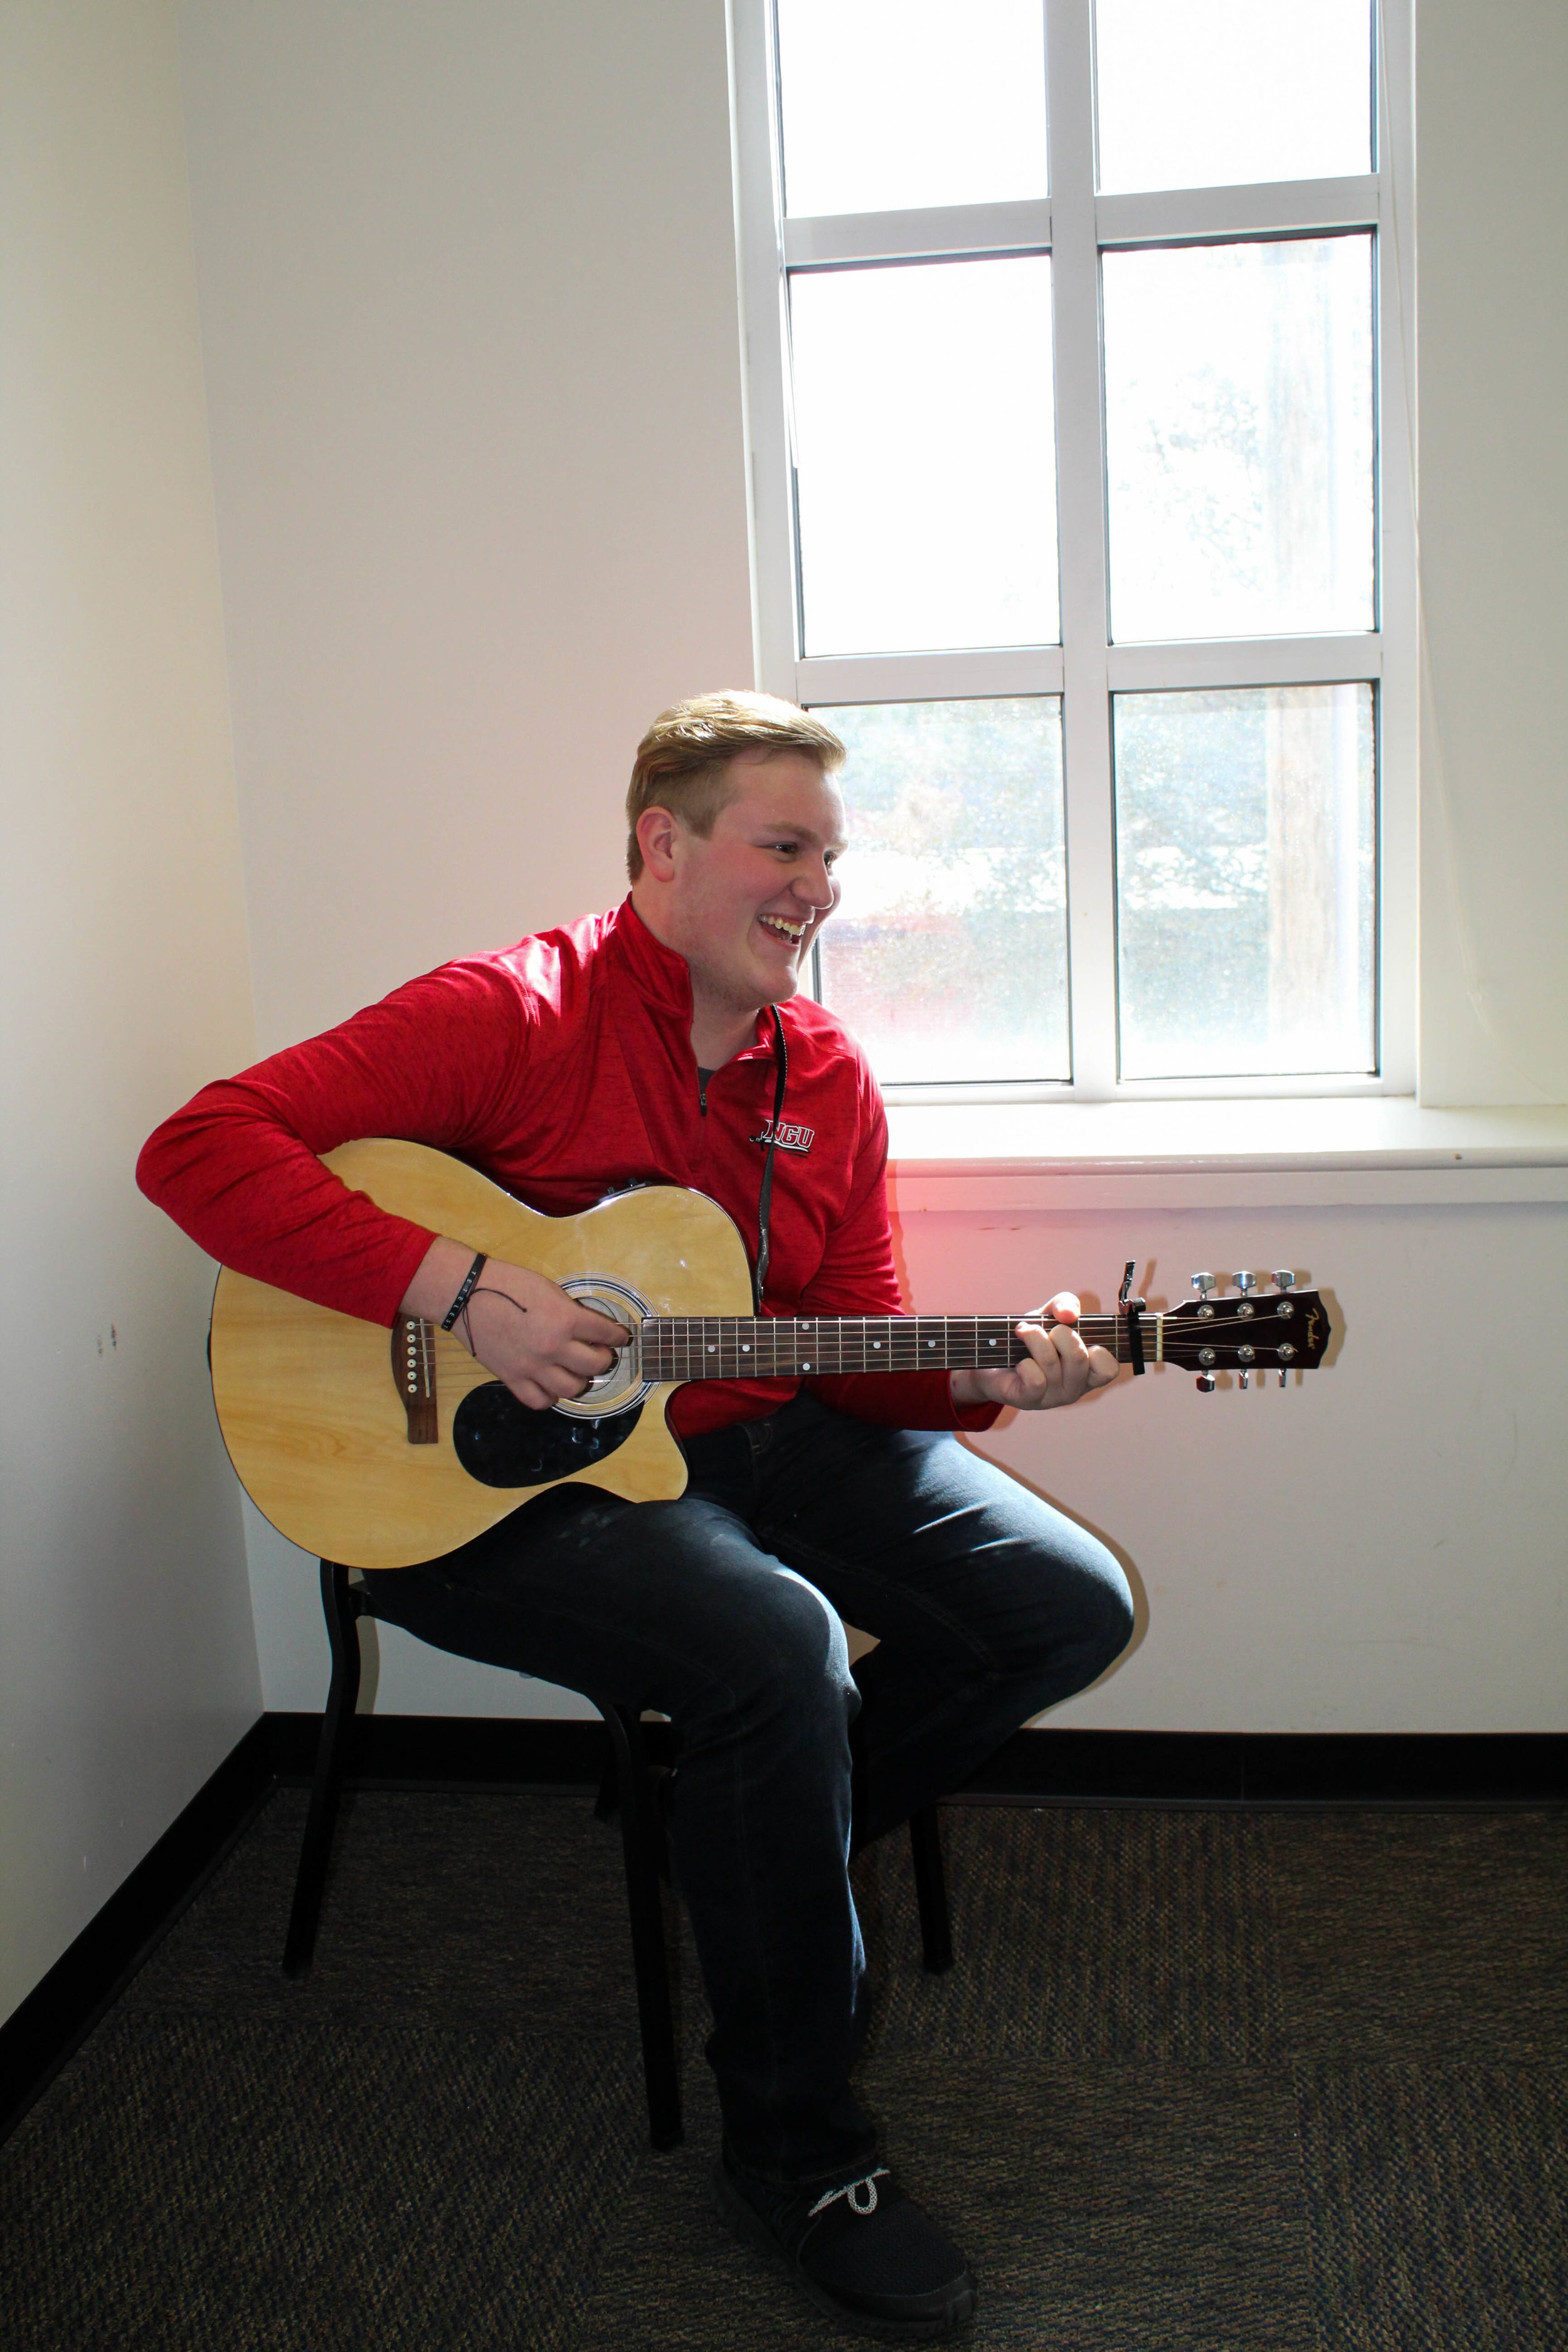 Nicolas Olson, a freshman double major in business administration and Christian studies, practices his guitar as he wears red for the awareness of heart disease.